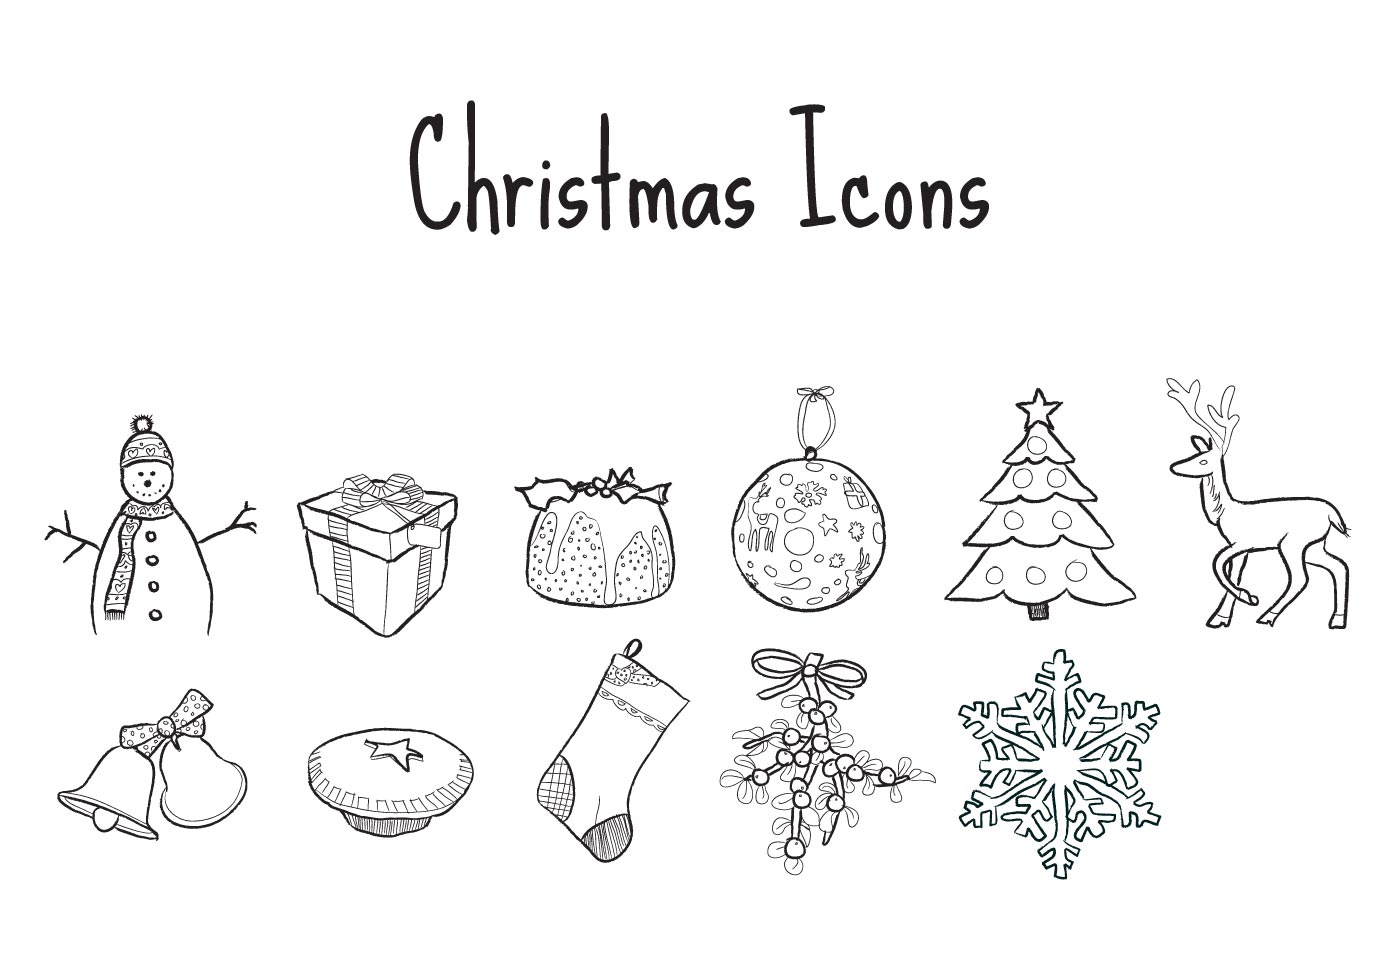 Wordpress Free Icons Free Illustrated Christmas Vector Icons Download Free